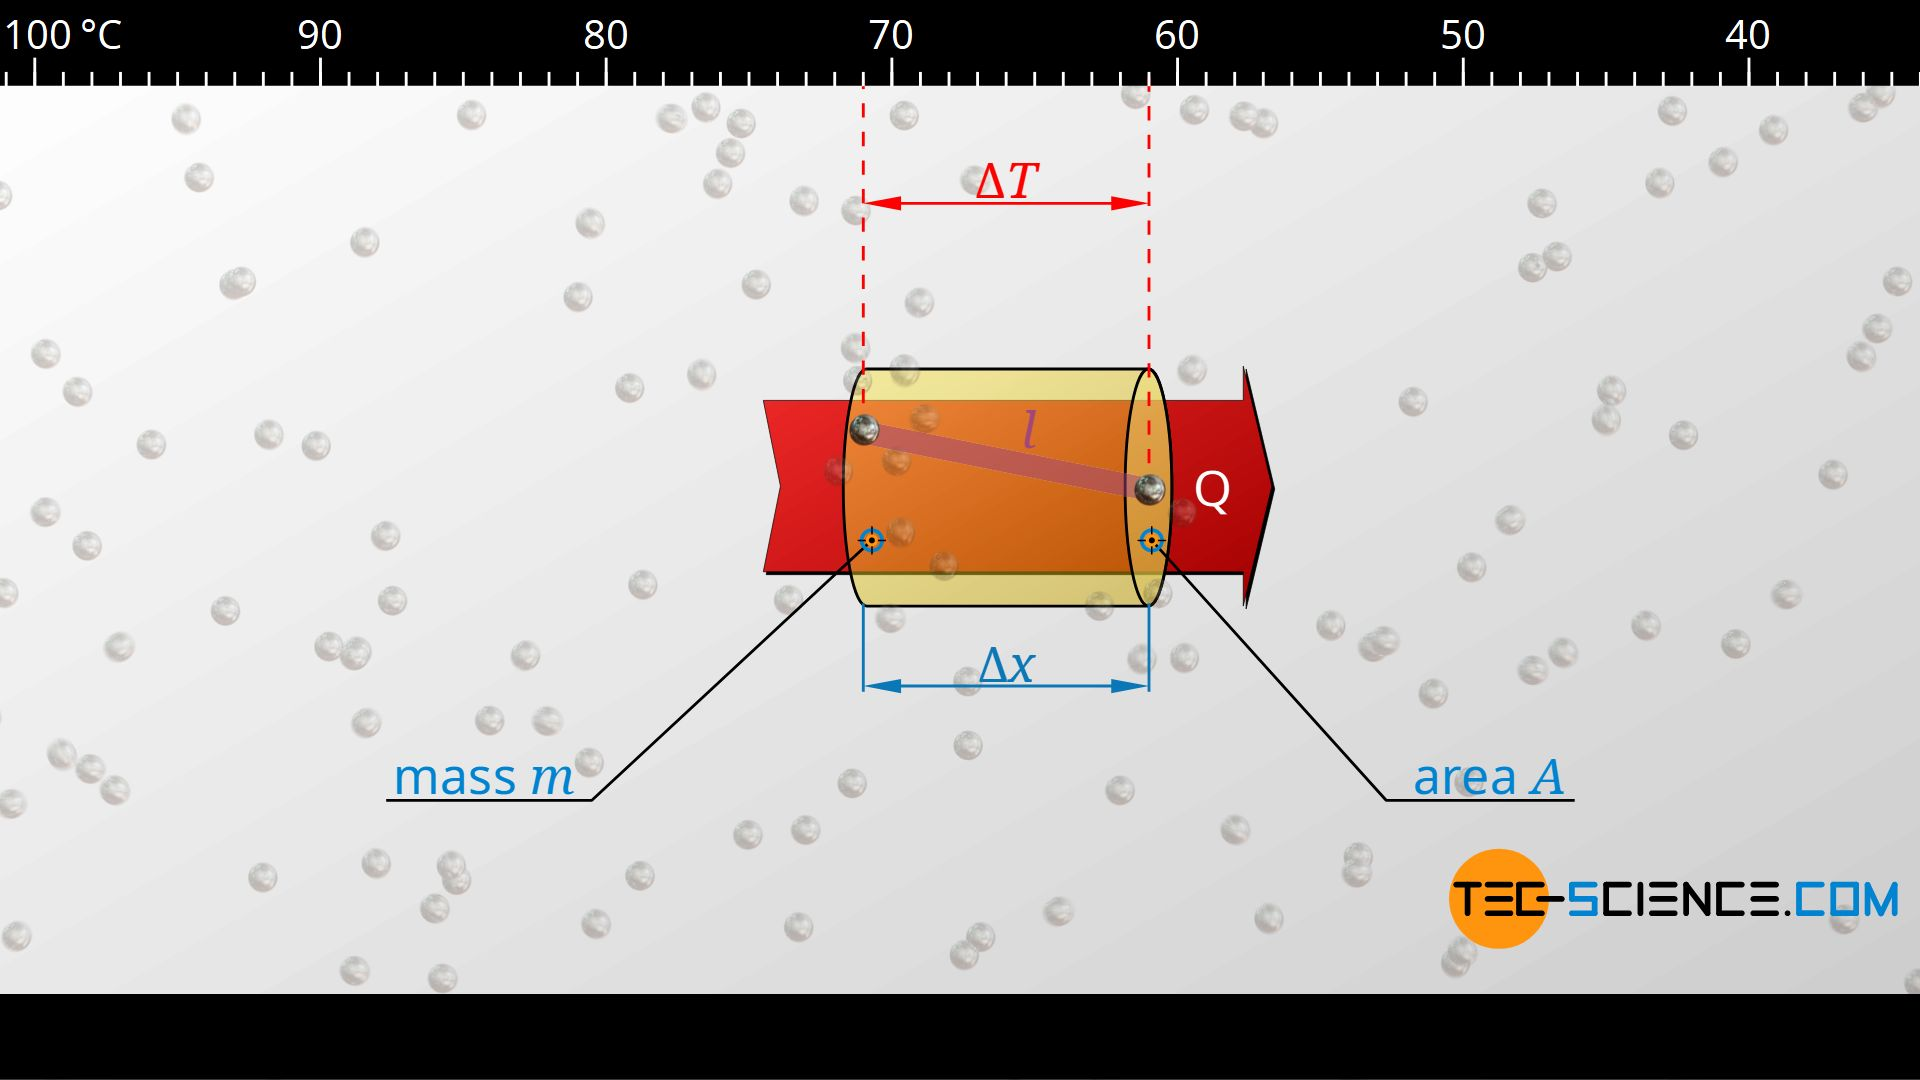 Calculation of the heat flow rate using the specific heat capacity and the mean free path of the phonons